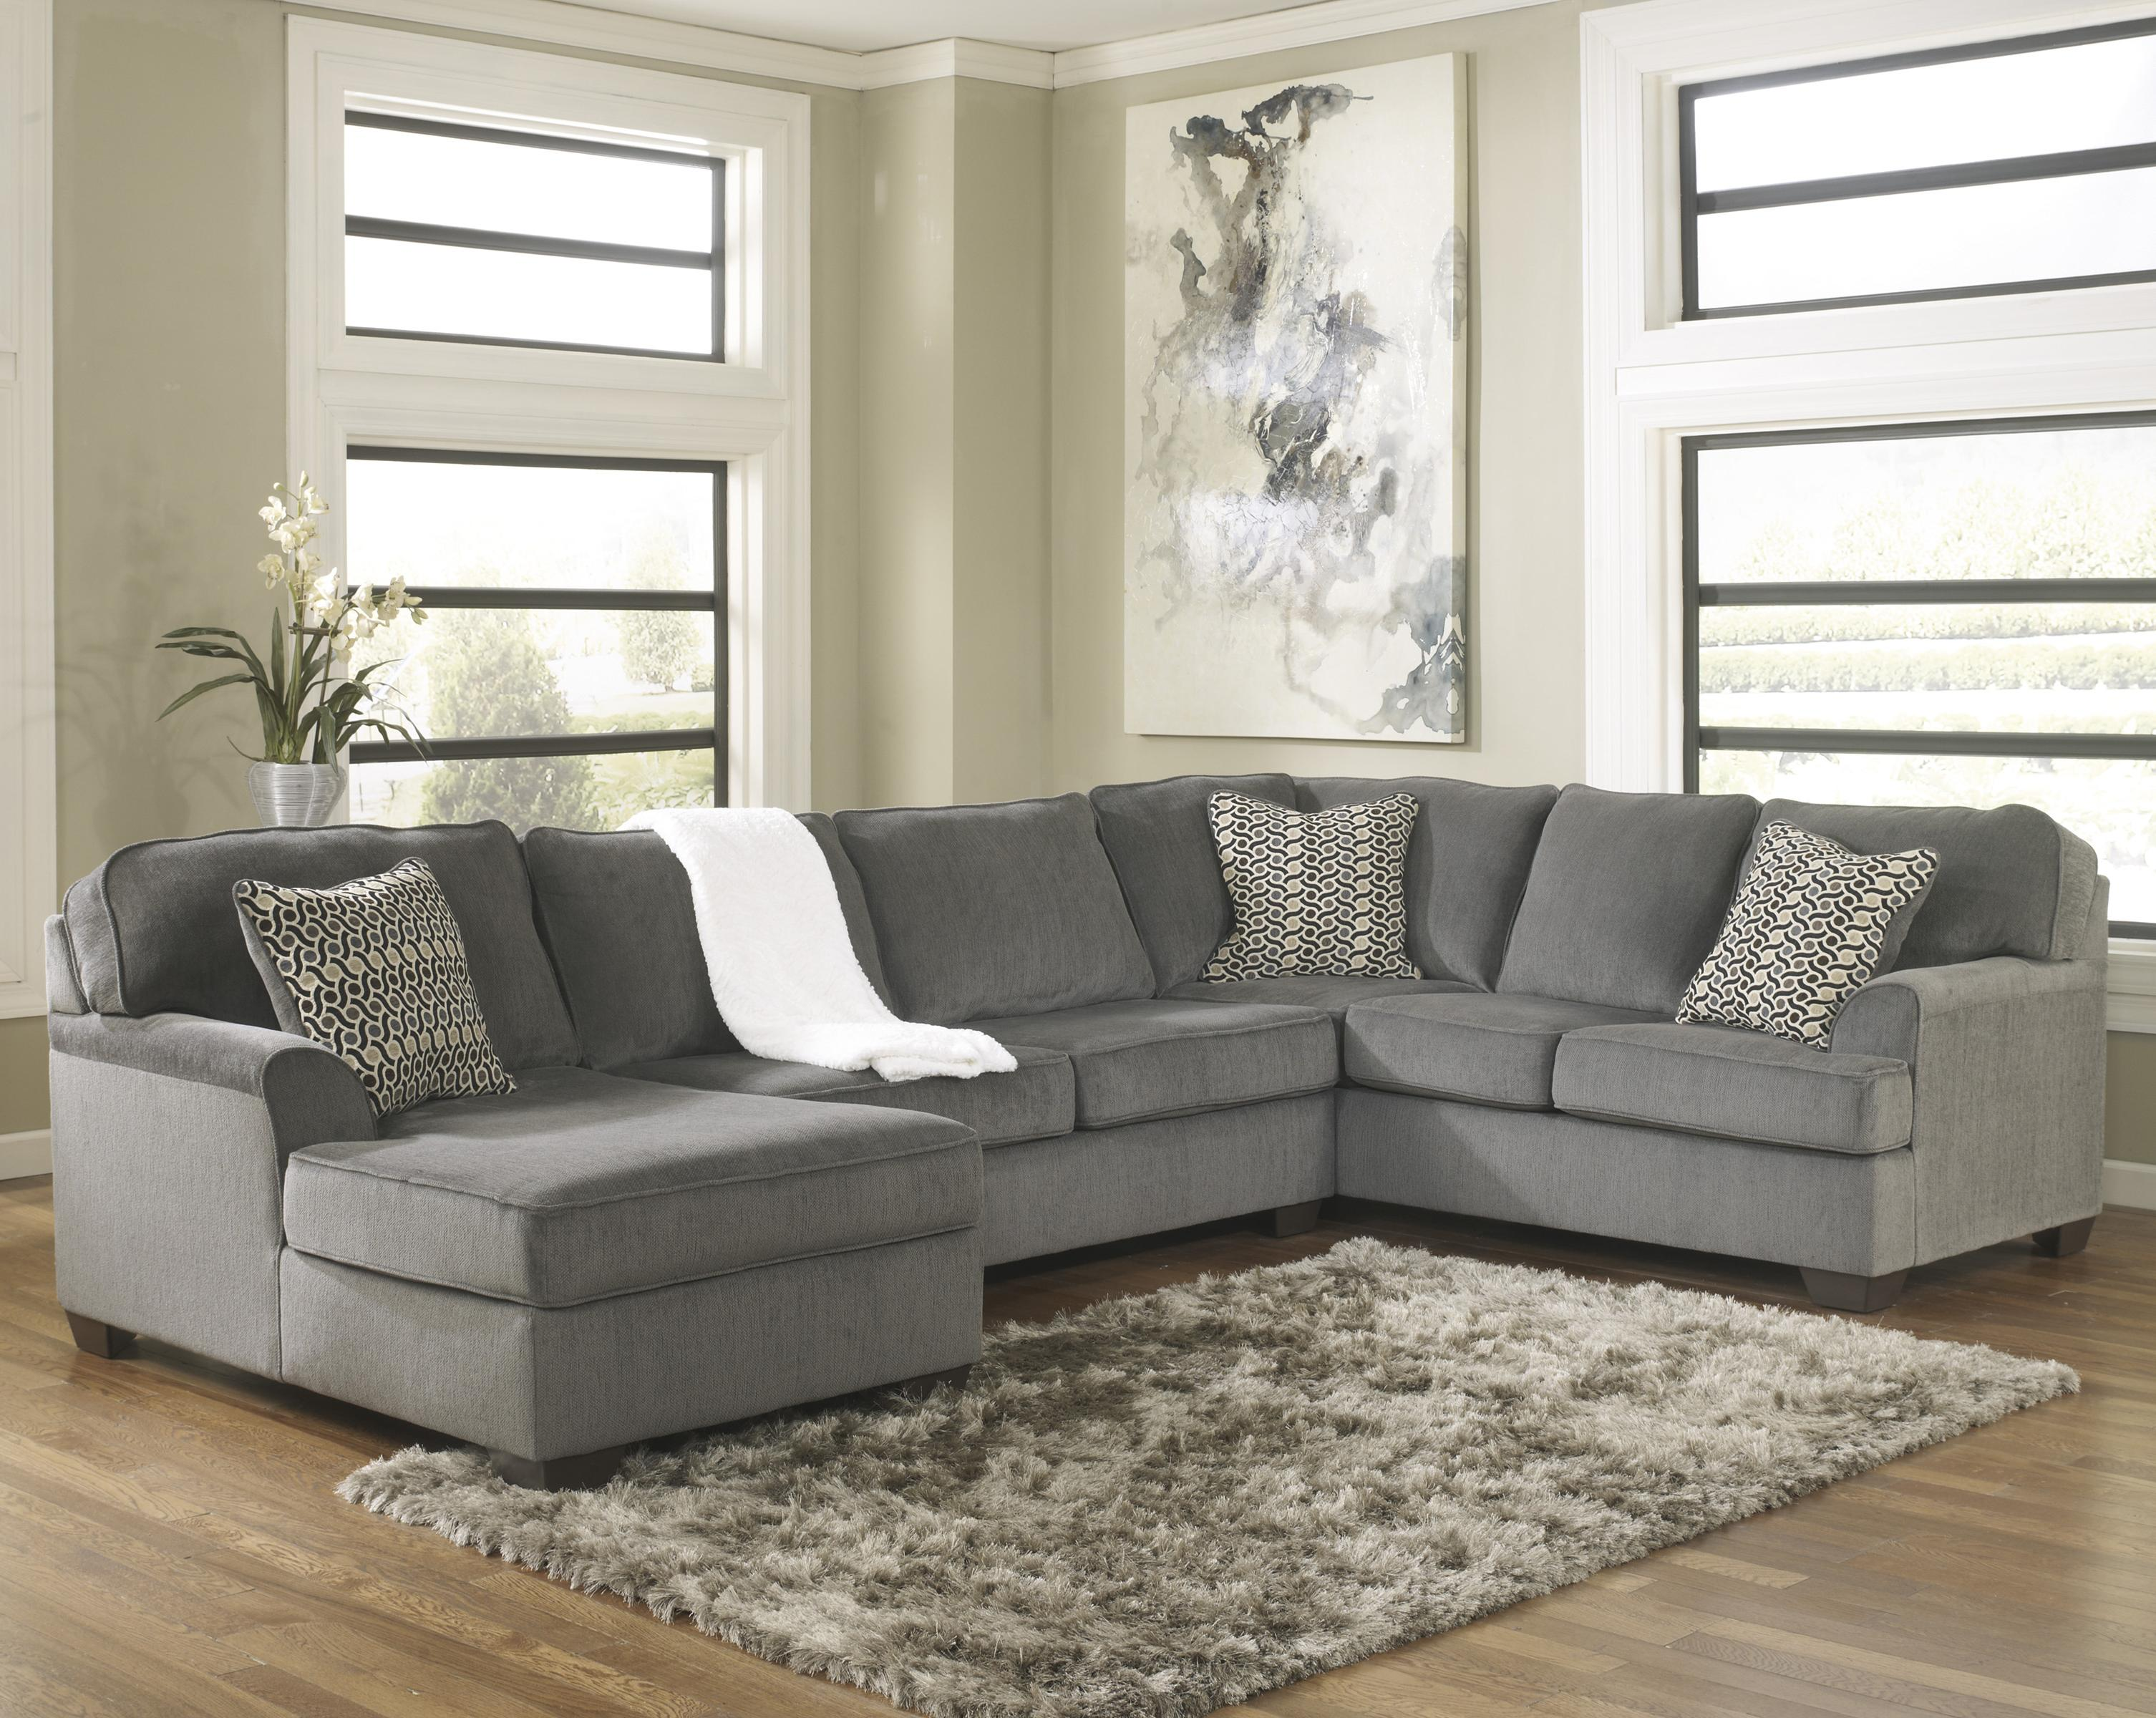 Ashley Furniture Loric - Smoke Contemporary 3-Piece Sectional with Chaise - Item Number : 3 sectional sofa - Sectionals, Sofas & Couches